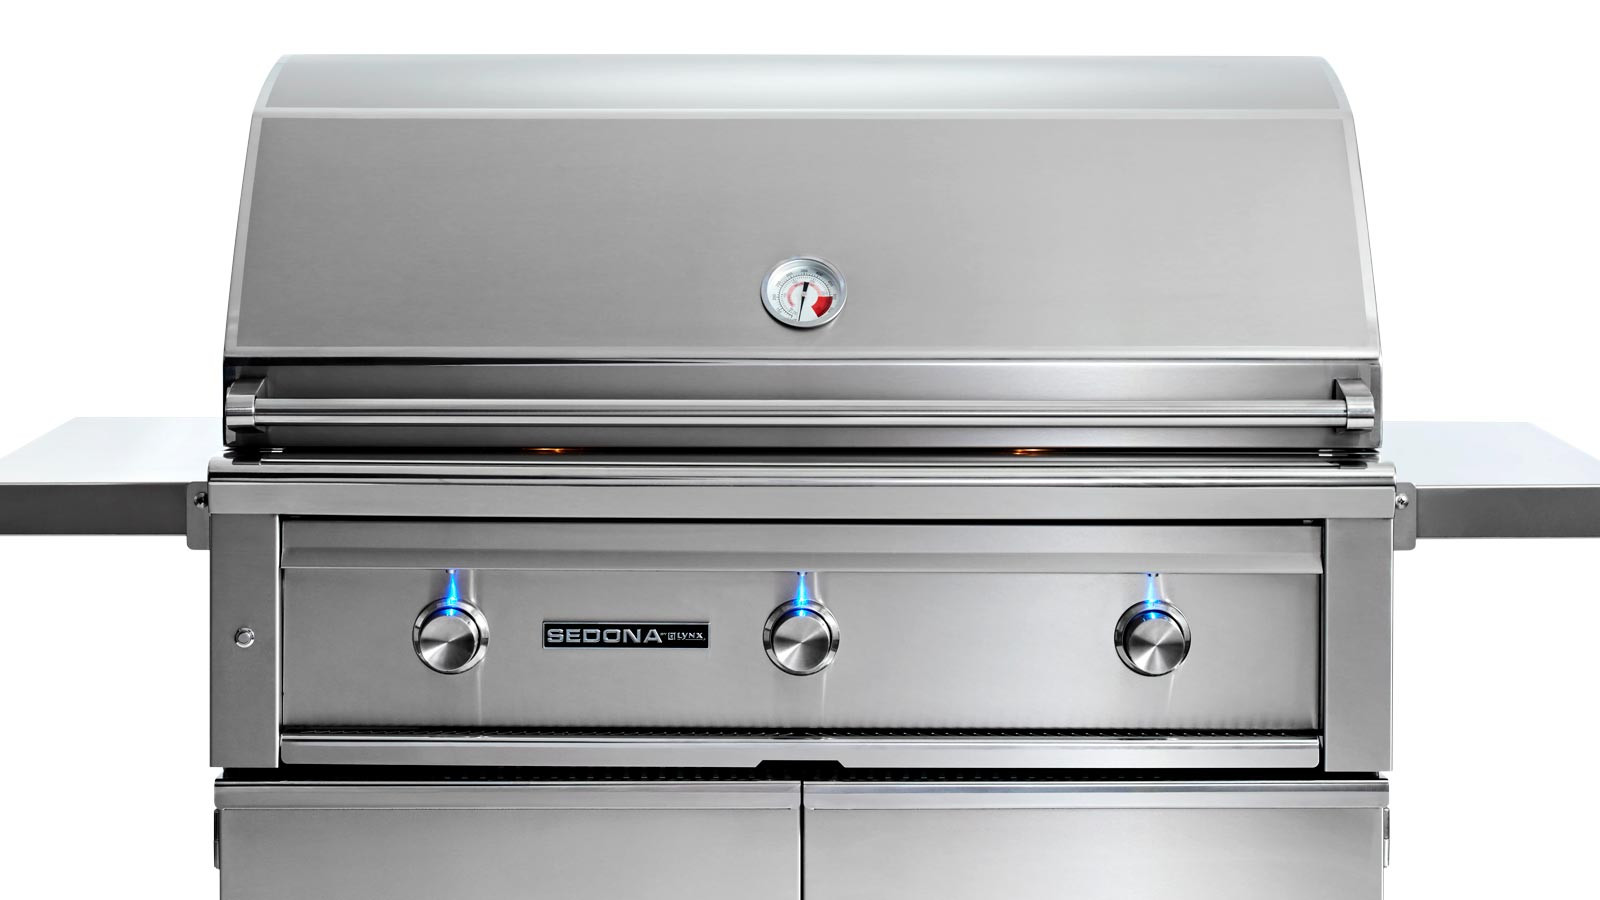 42 Sedona Freestanding Grill With 1 Prosear Infrared Burner And 2 Stainless Steel Burners L700psf